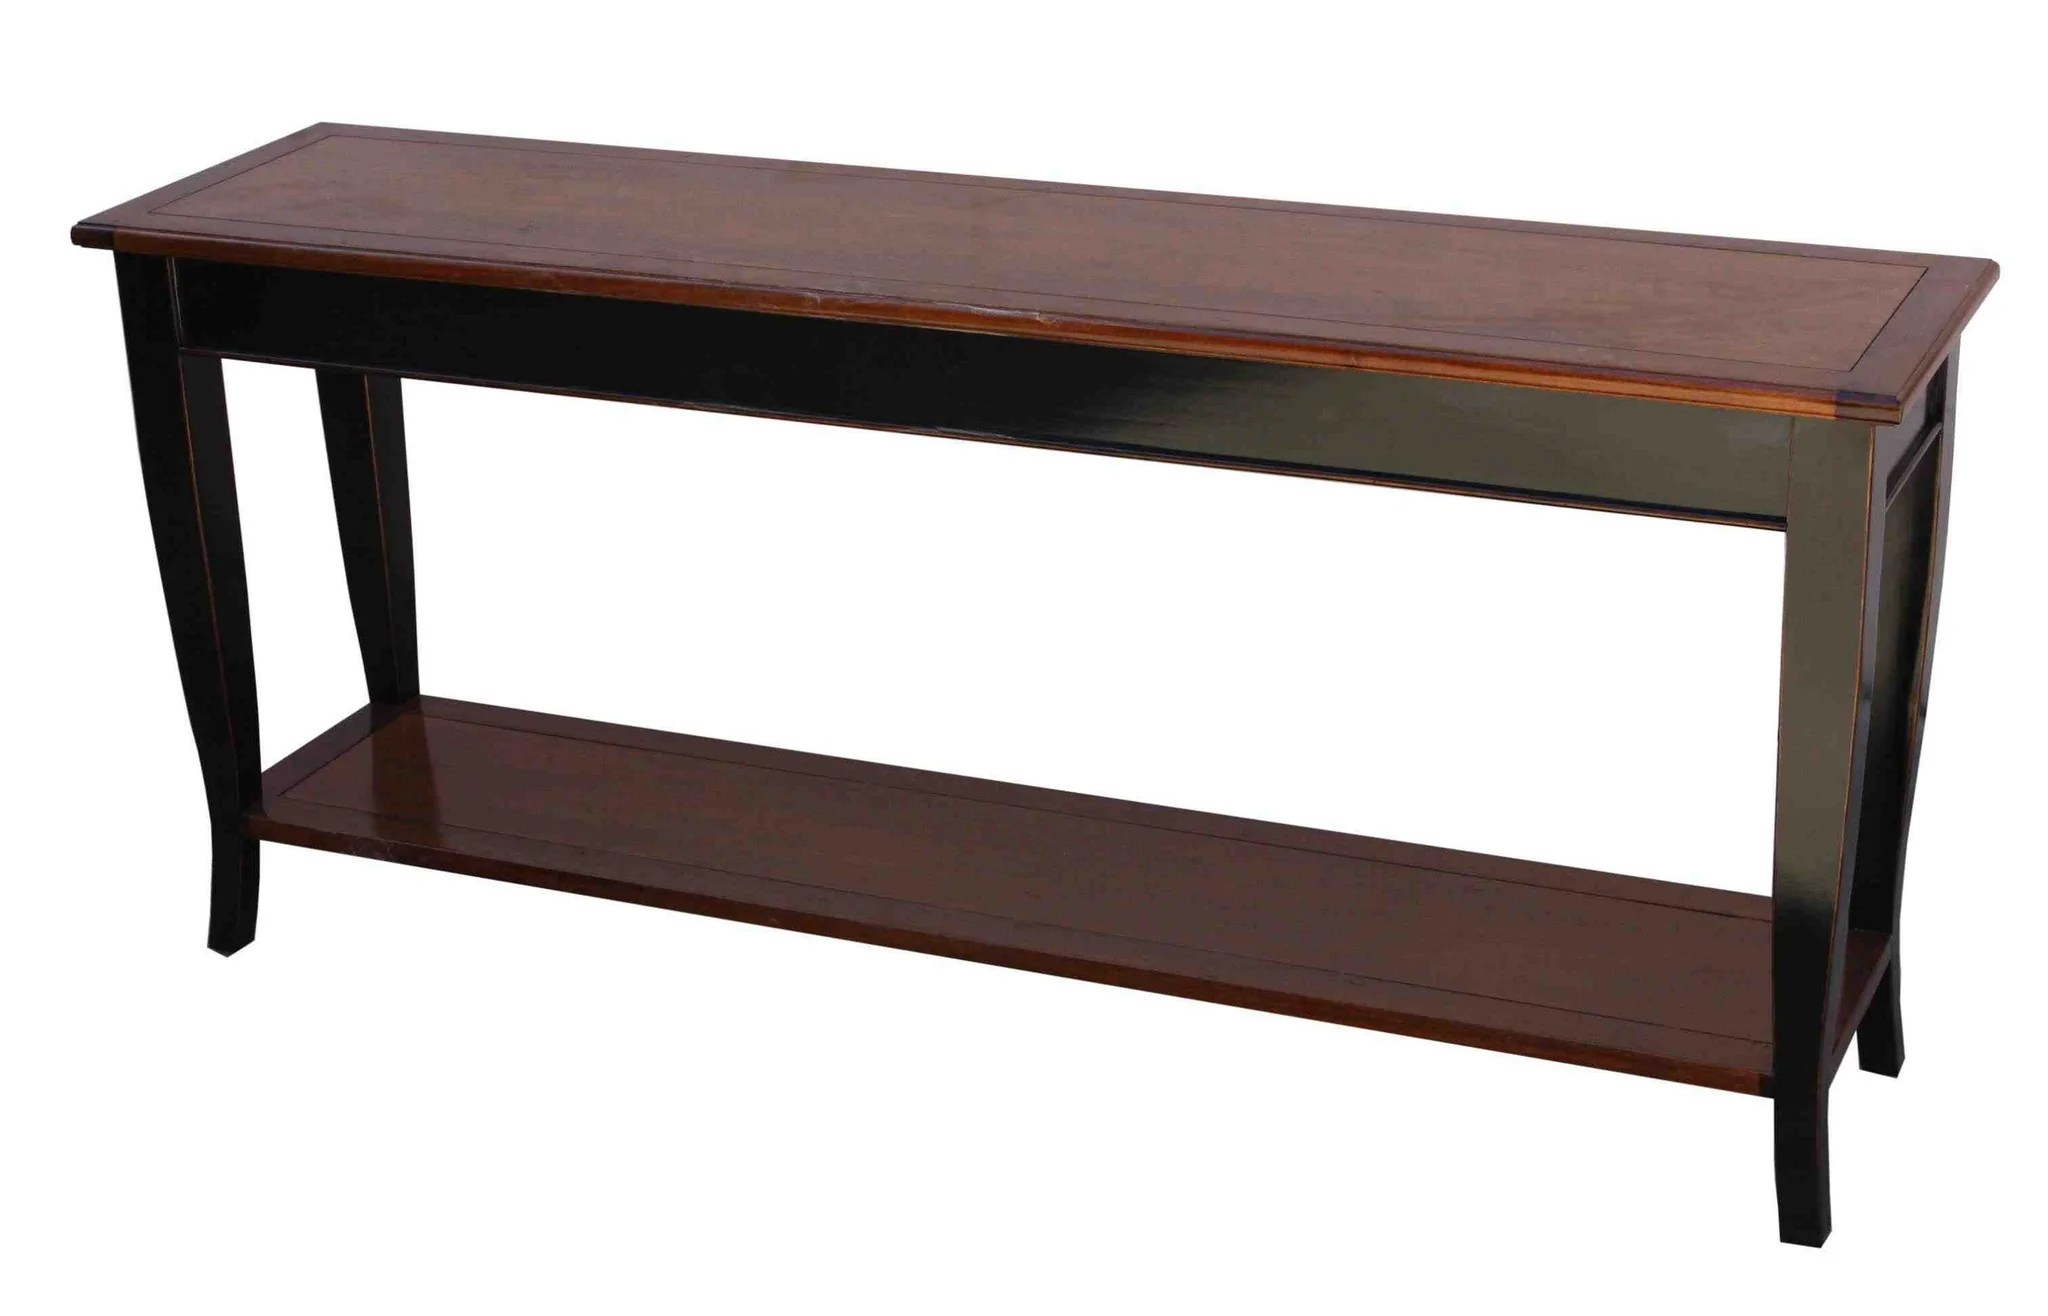 living room console what to do with alcove in san marino mortise tenon